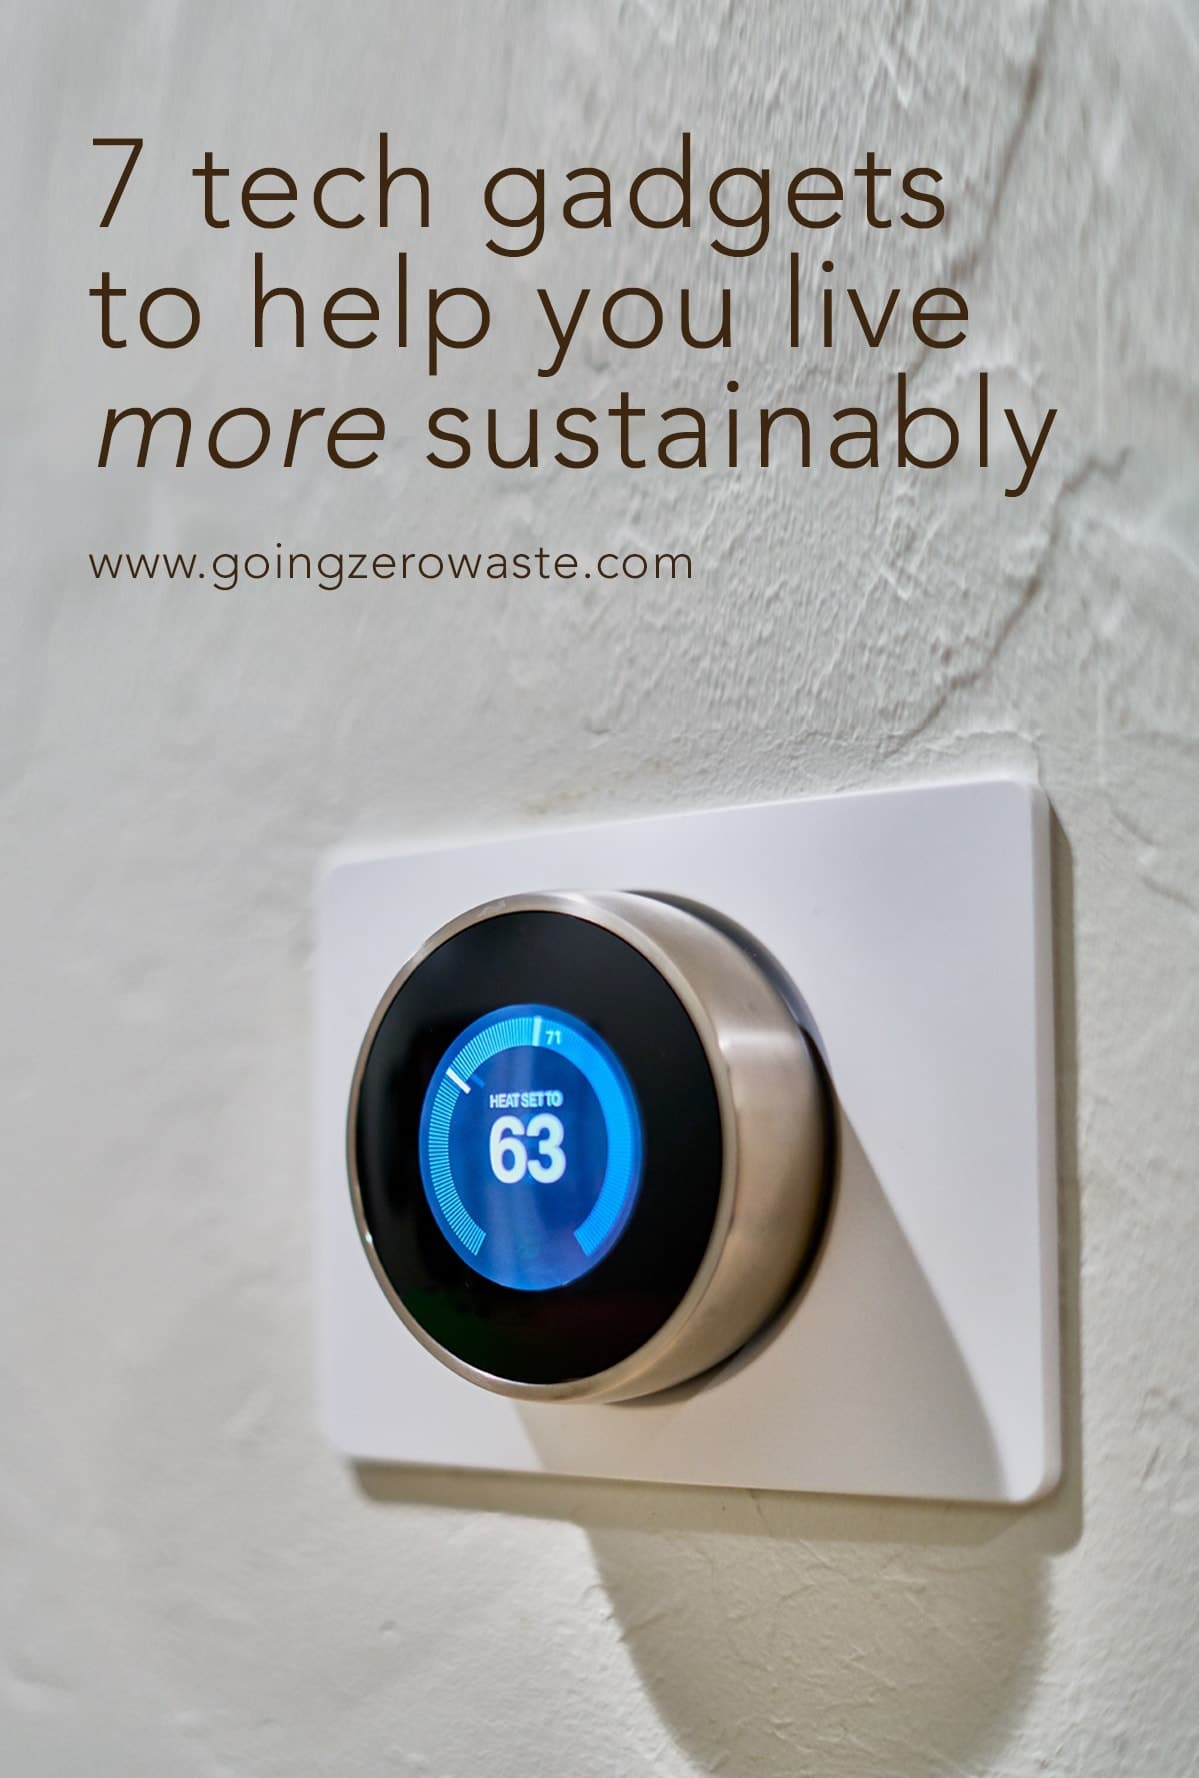 7 Ways Tech Can Help You Live More Sustainably